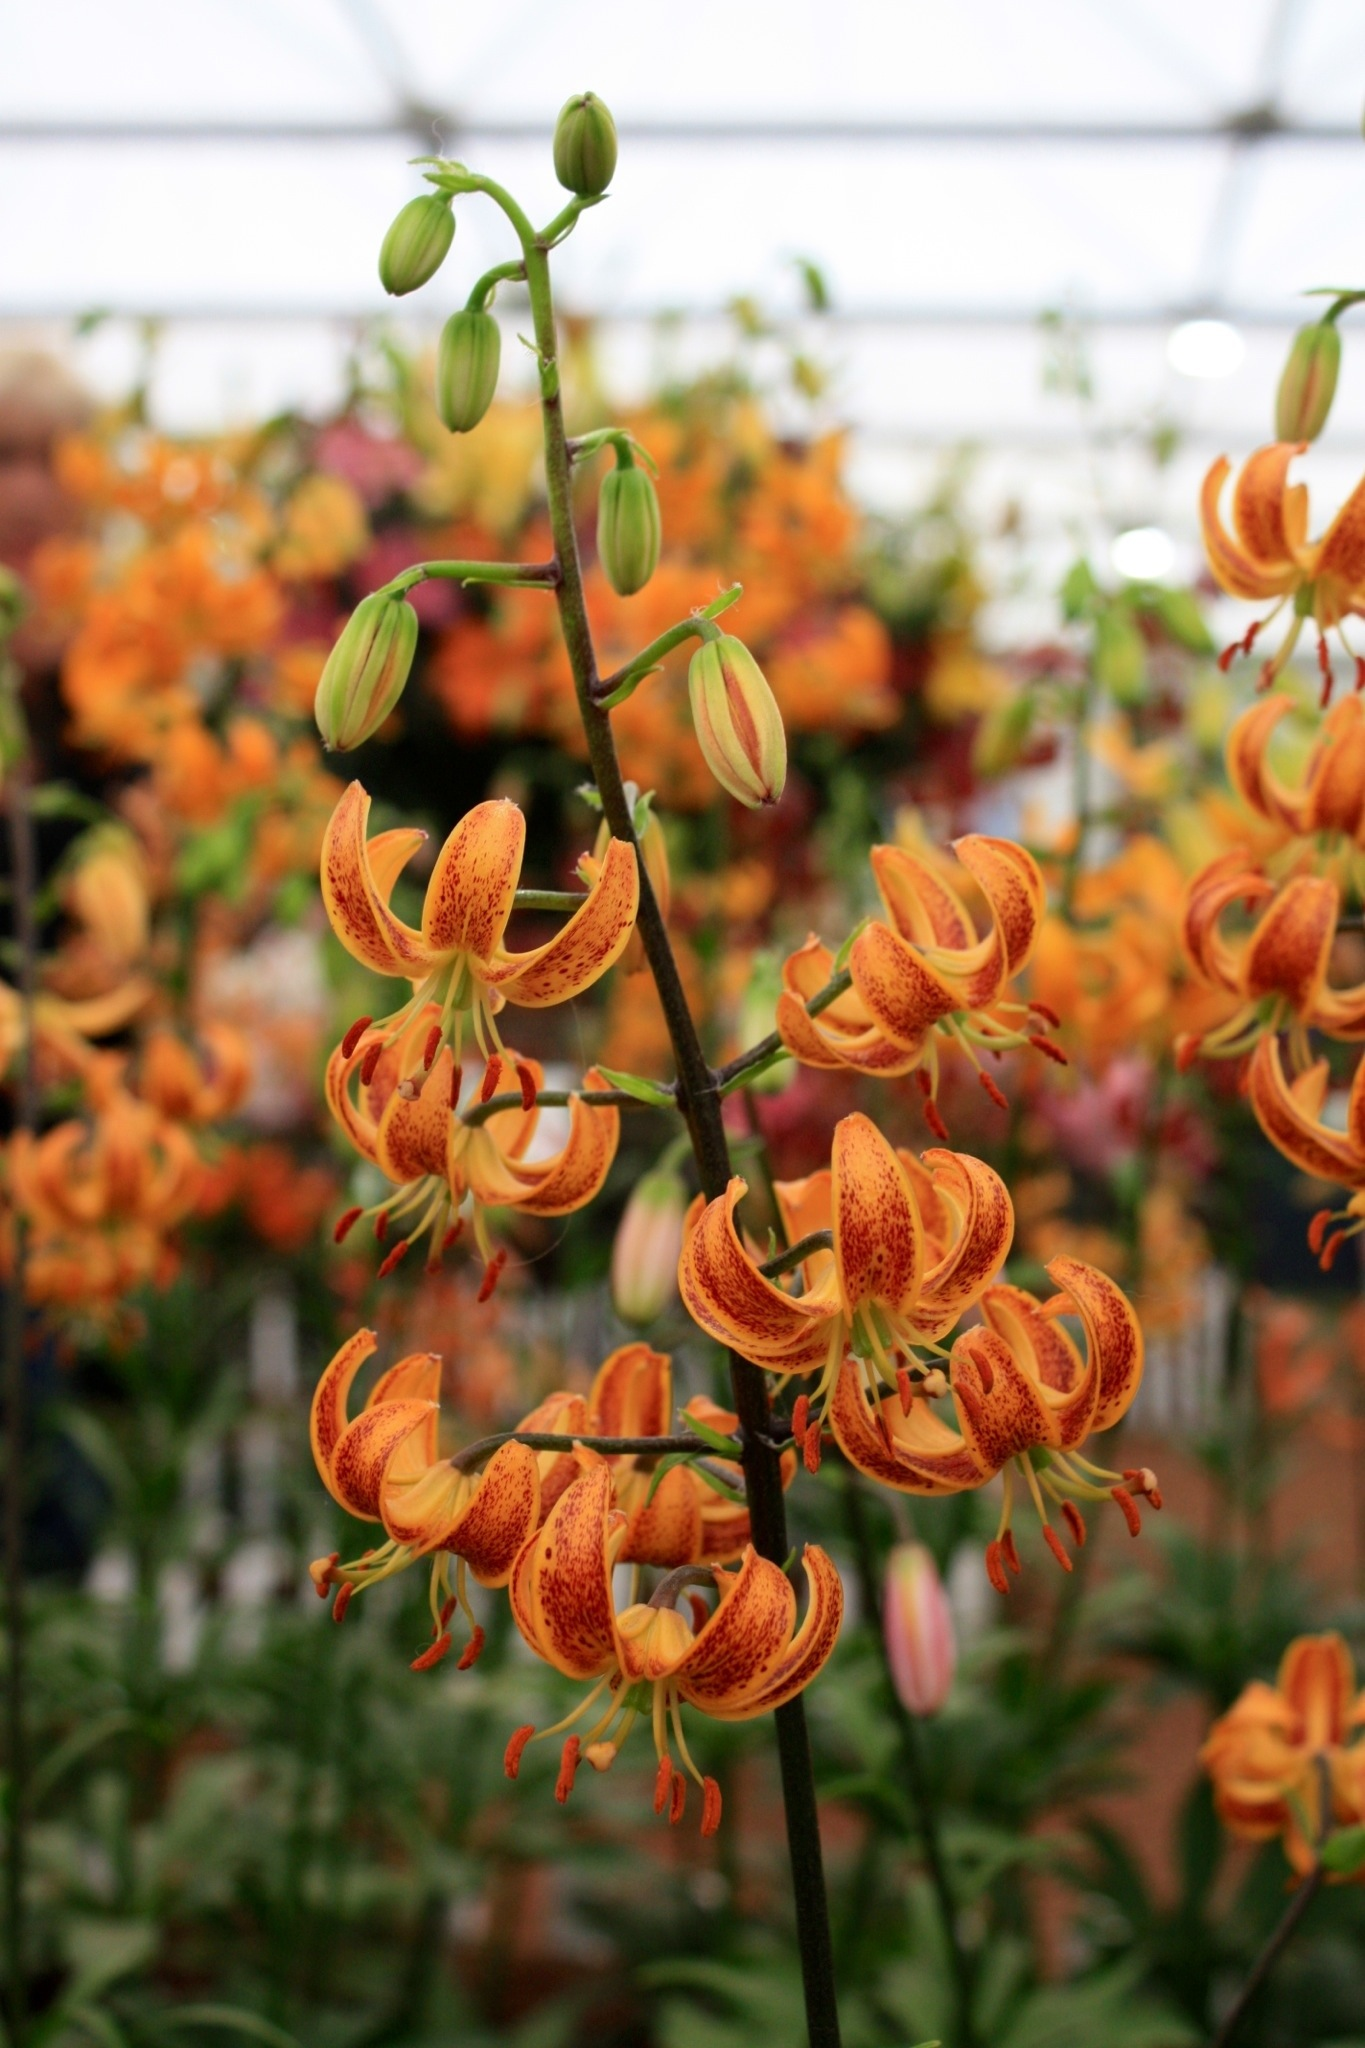 Wp images lilium post 4 - 20130527 092014 Jpg